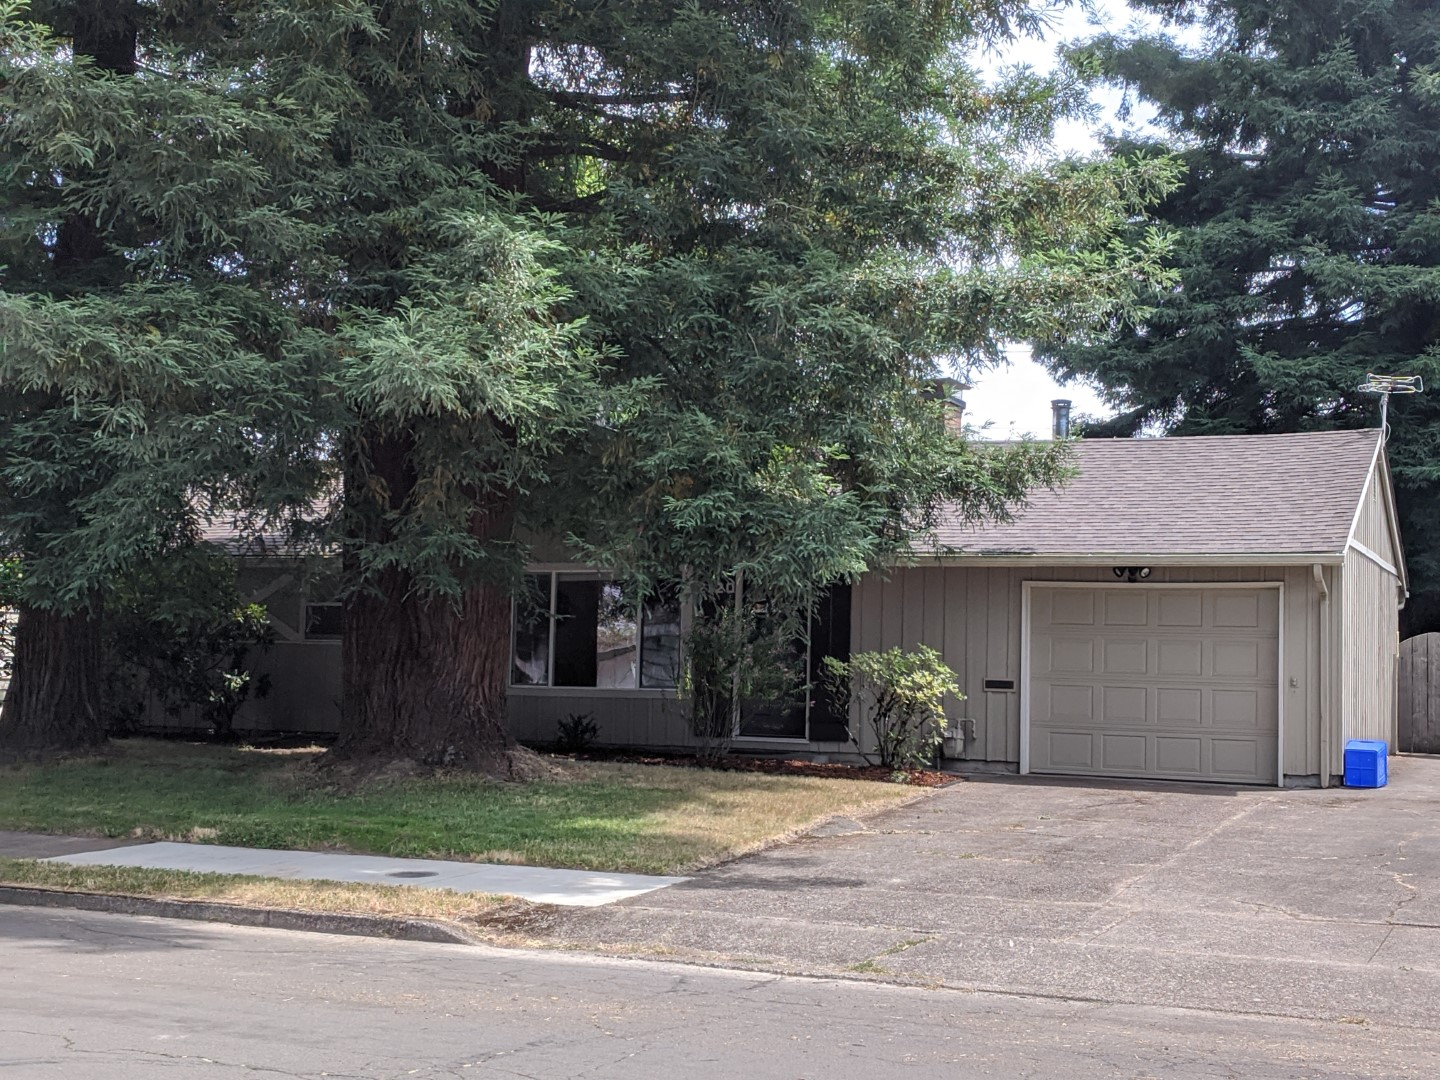 Three bedroom house in northwest Corvallis with one and a half bathrooms.   Fenced backyard with fruit trees and raised beds.  Remodeled in 2015, giving a convenient floor plan and updated kitchen.  Hardwood flooring throughout, with carpeting in the large bonus room opening to the backyard.  Certified wood stove on a raised hearth in the bonus room and a fireplace in the living room.  All appliances are included.   1424 sq. ft. plus garage.  View by appointment only: text 541-908-2446